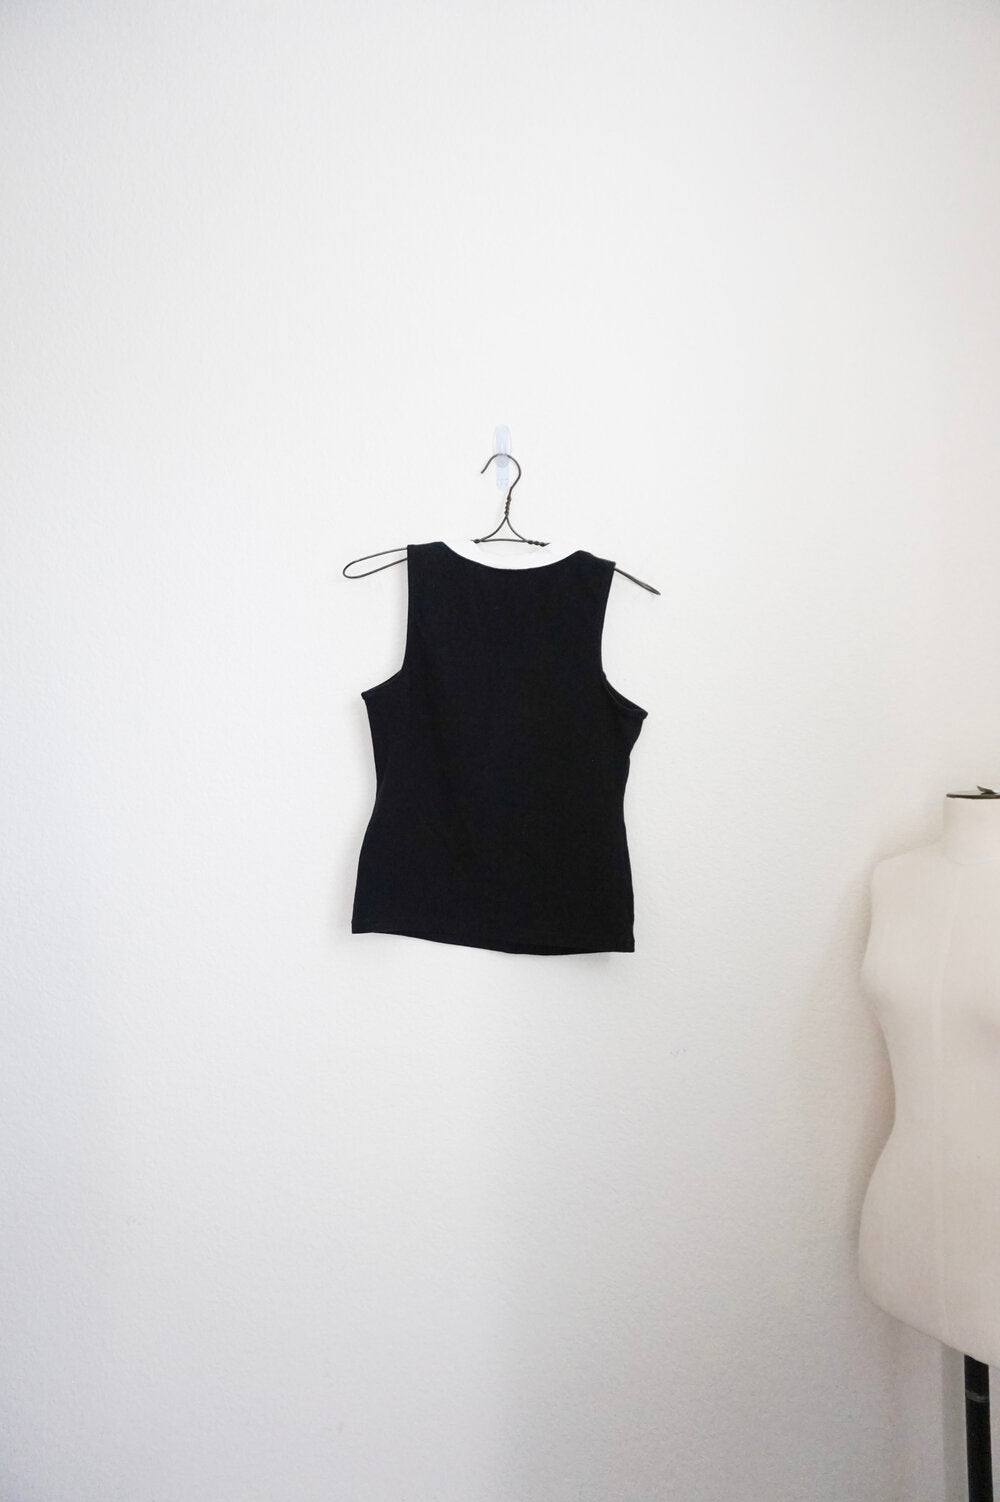 Mossimo vintage black & white straight neck stretch tank top